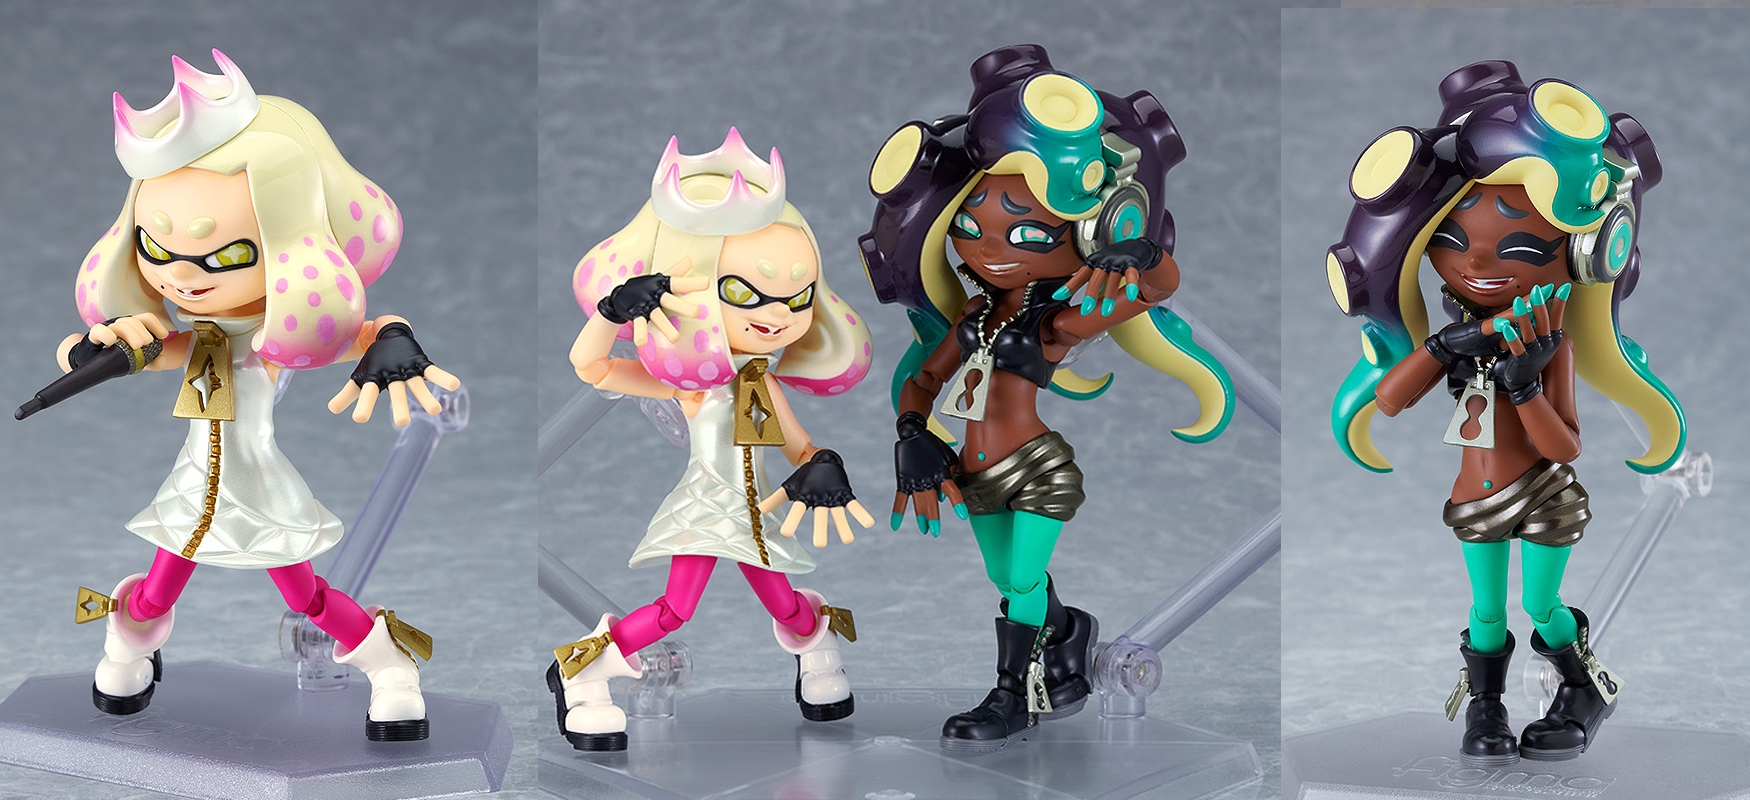 """Splatoon 2 Pearl And Marina """"Off The Hook""""Figma Set Announced From Good Smile Company"""